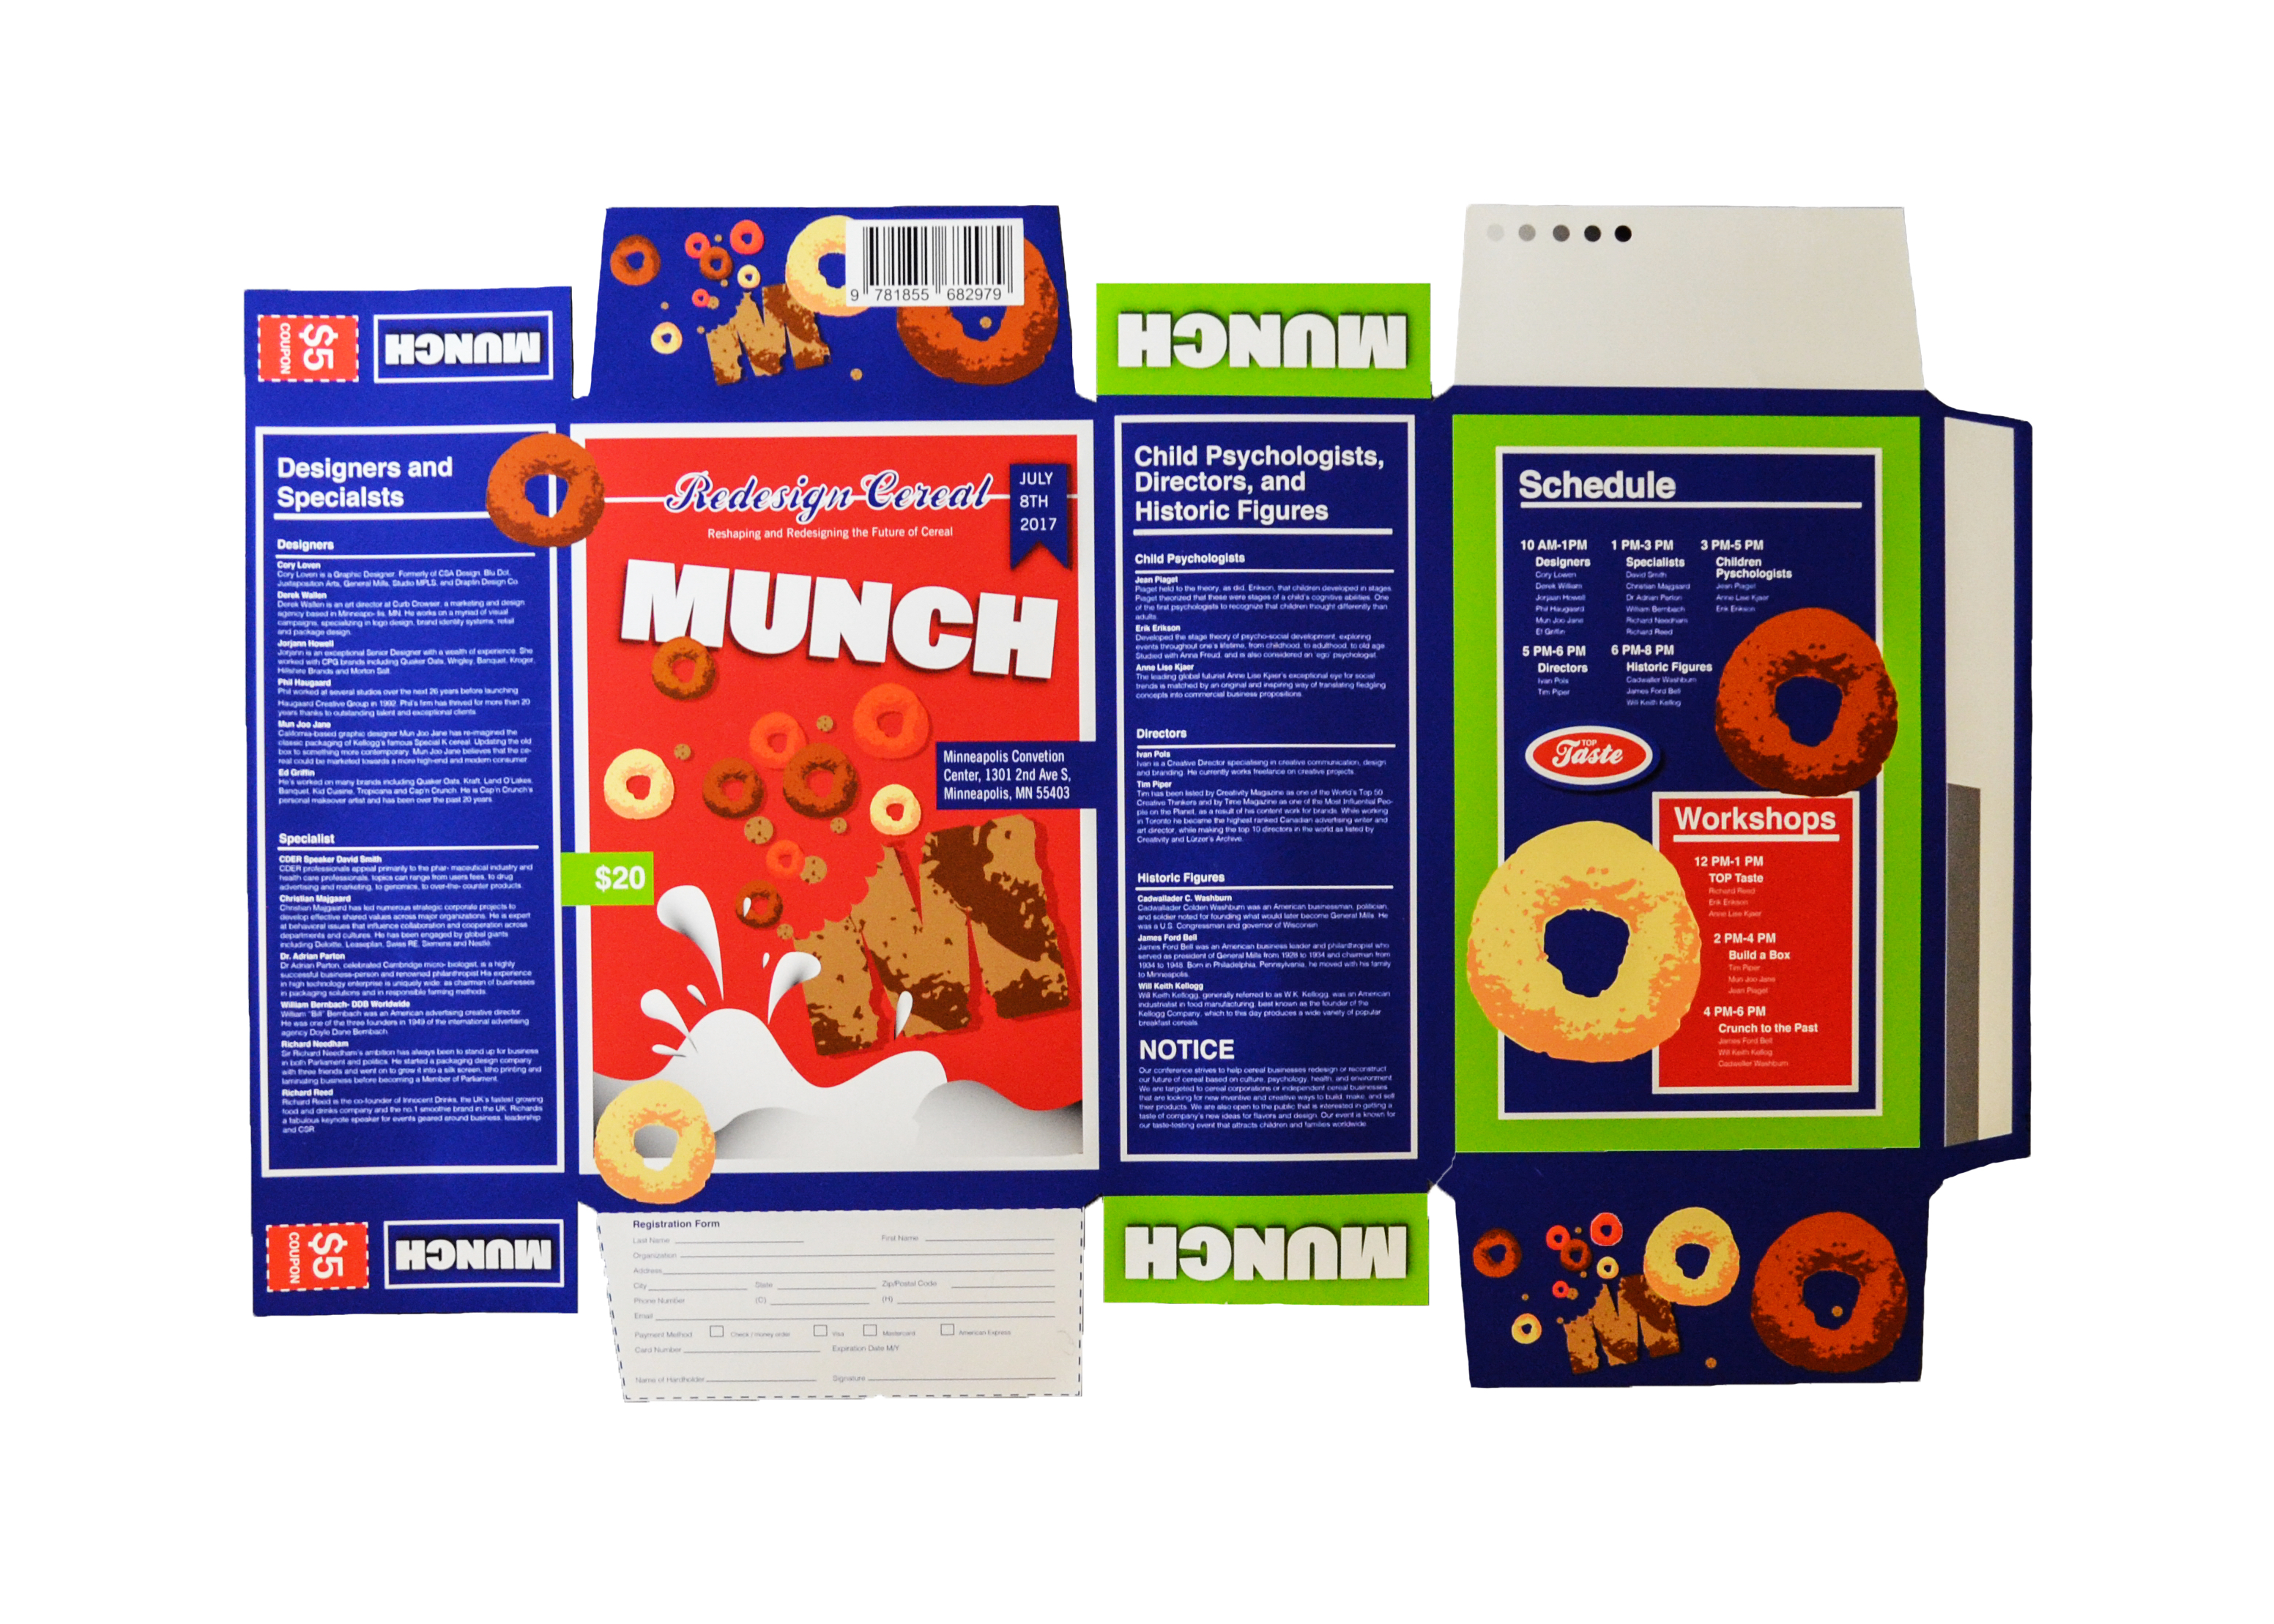 Munch 24x36 Conference Poster